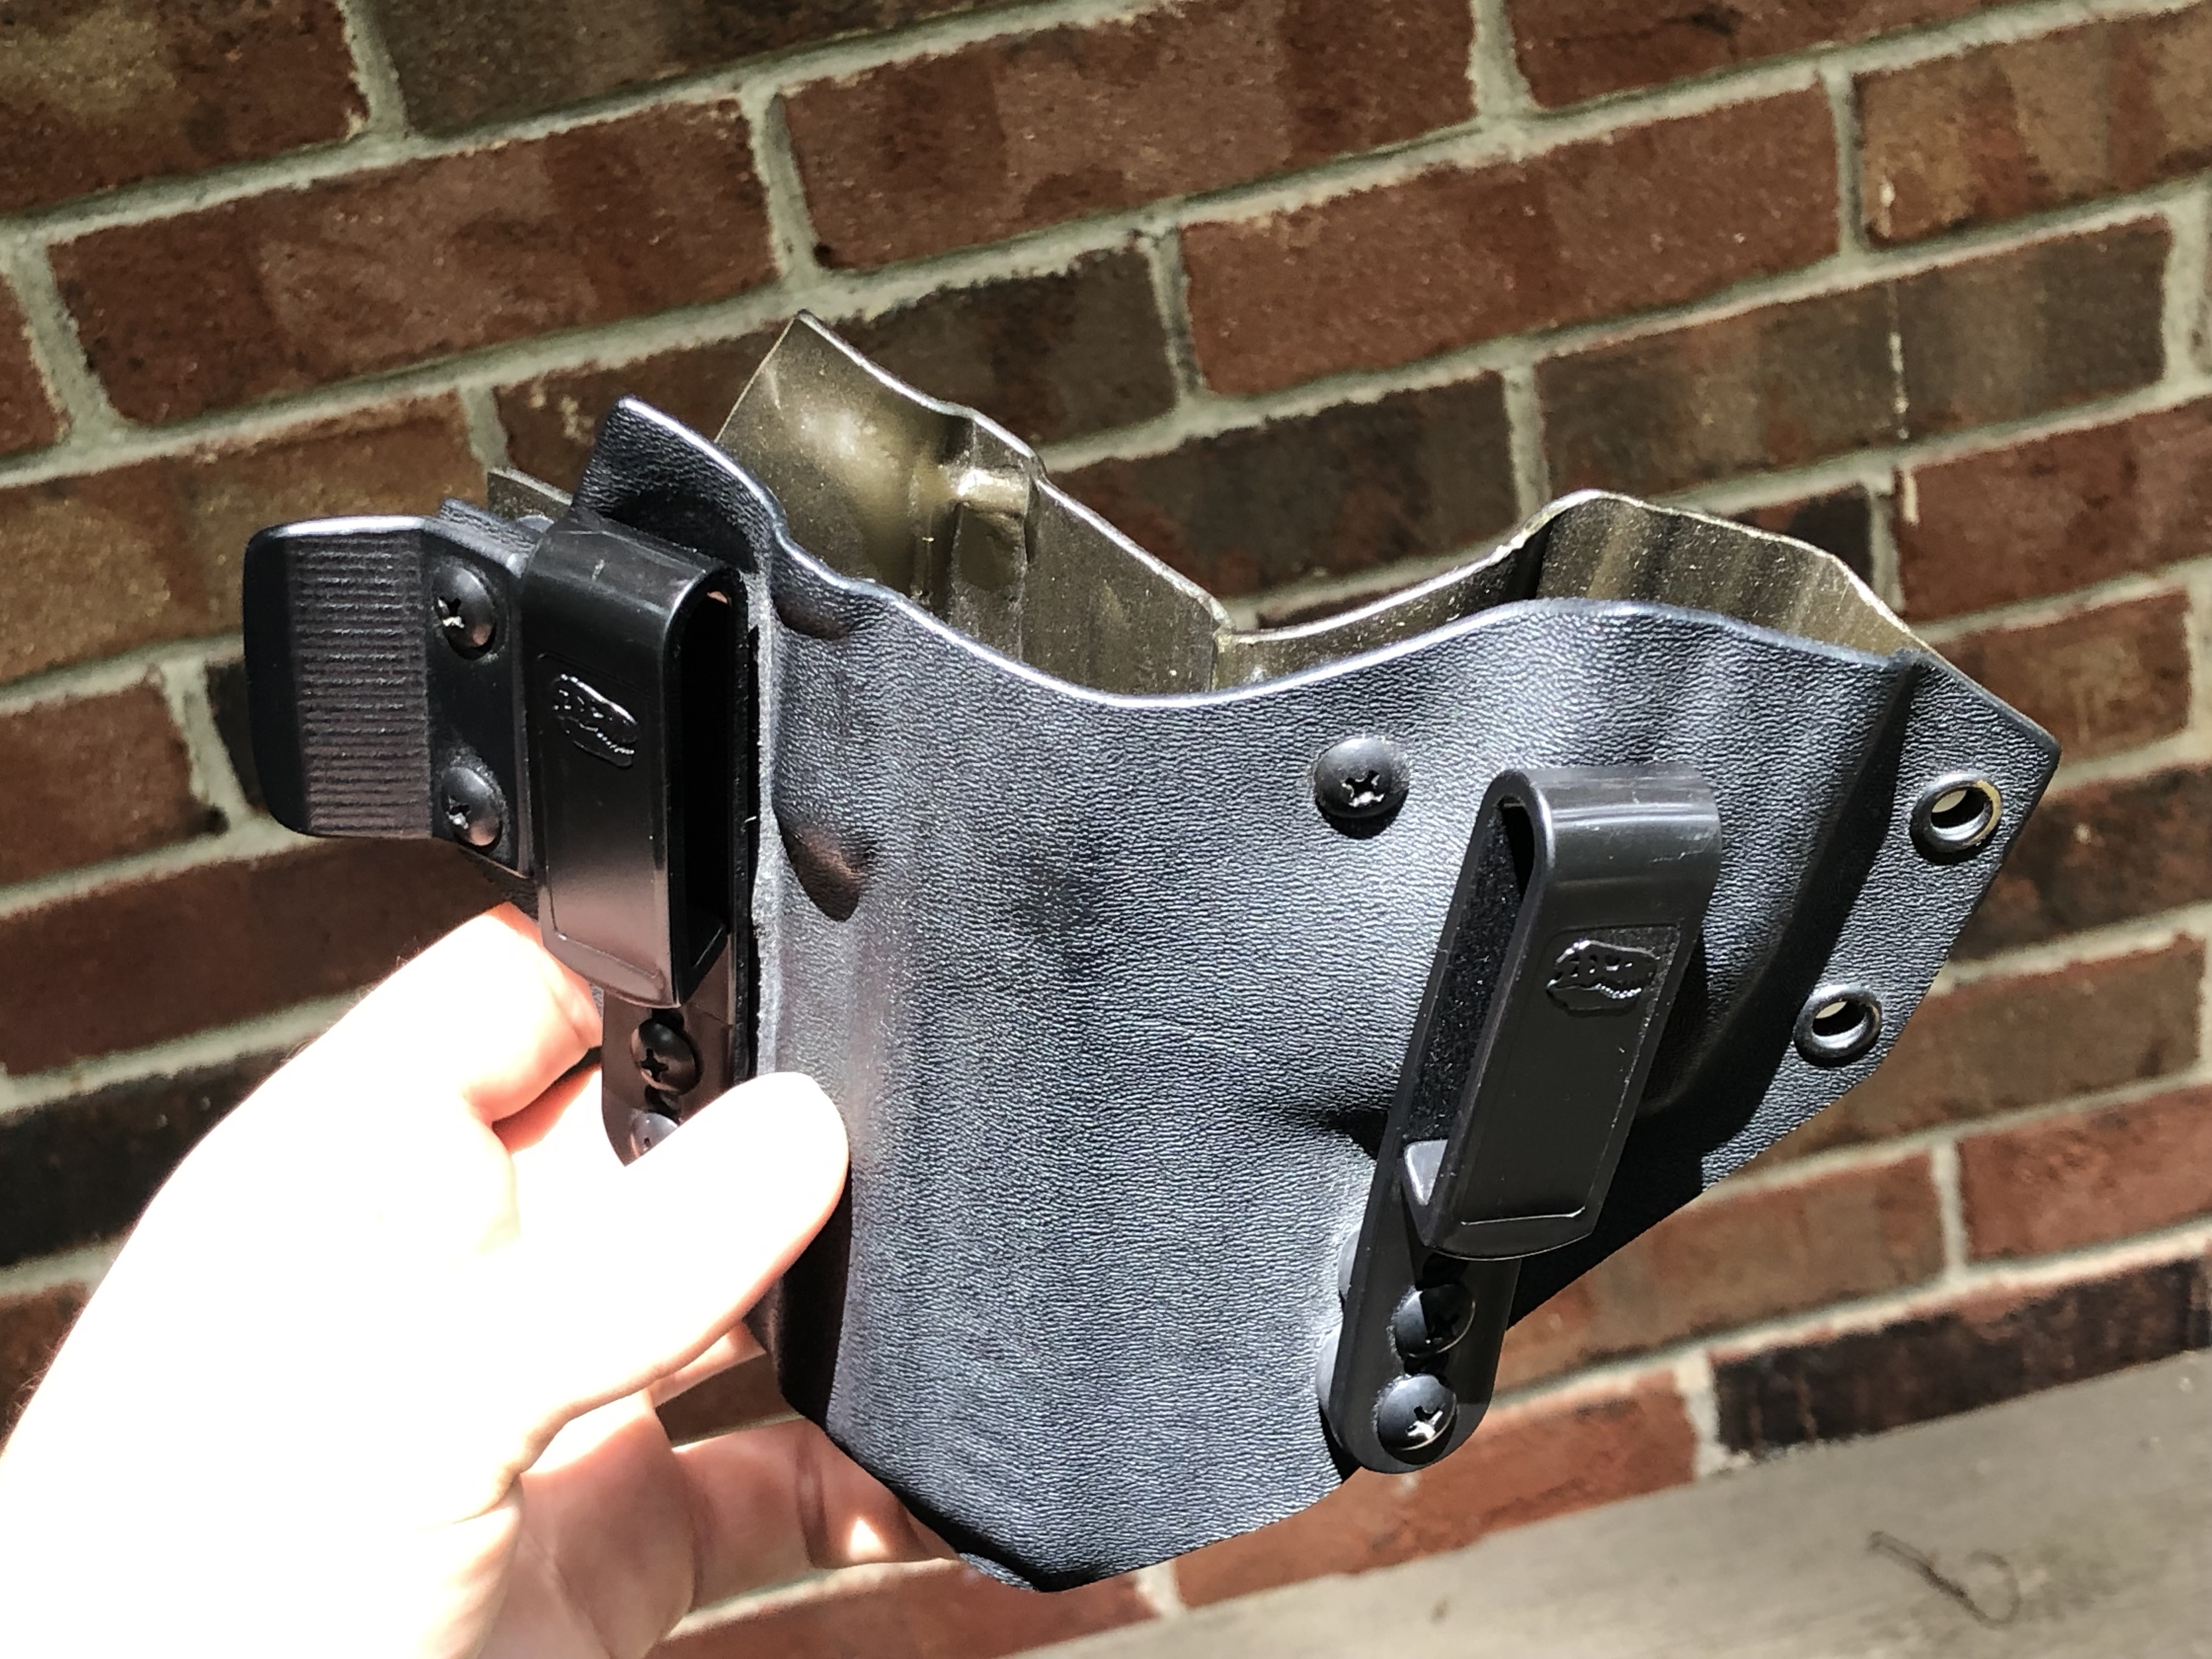 WTS - Like new T-Rex Arms Sidecar P30L appendix holster-ydgss4o7ruouoh-xt0j0pq.jpg